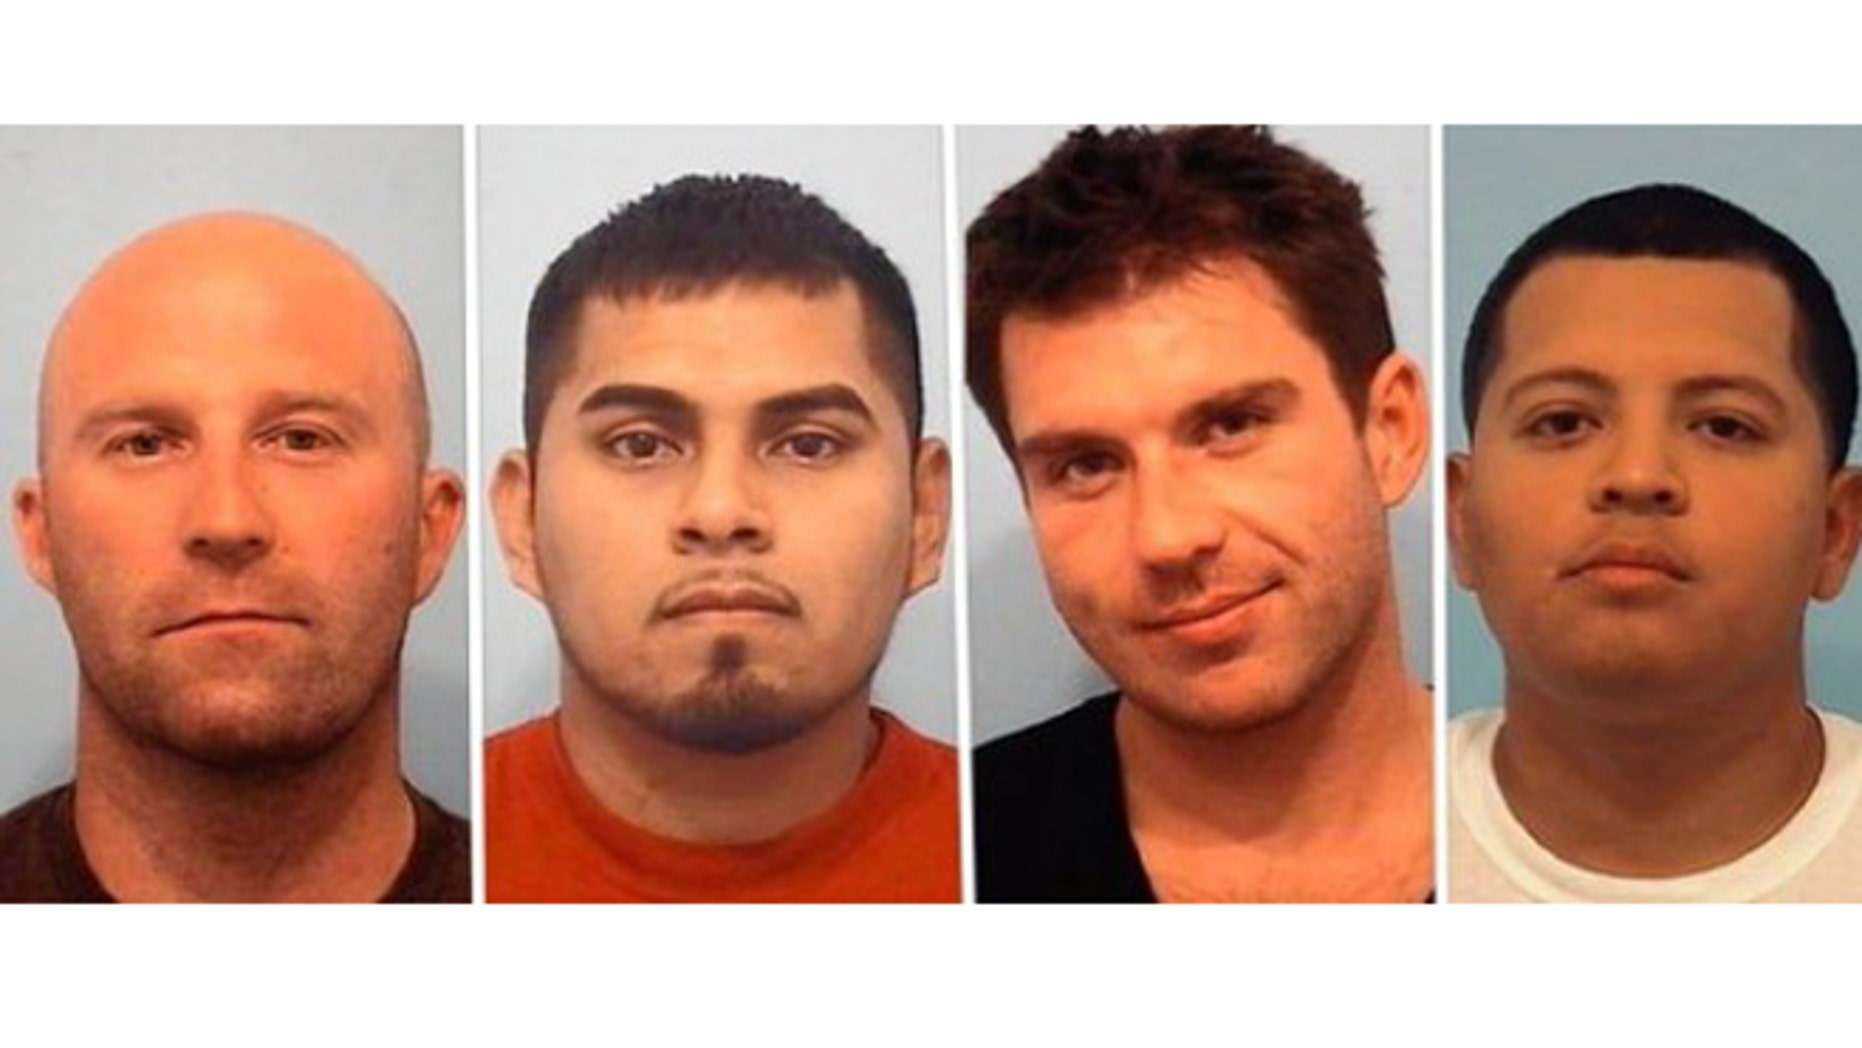 From left: Marcin K. Klepinowski, Andres Lopez, Swavek Krakowiak and Jesus Nino. (Naperville Police Department photos)